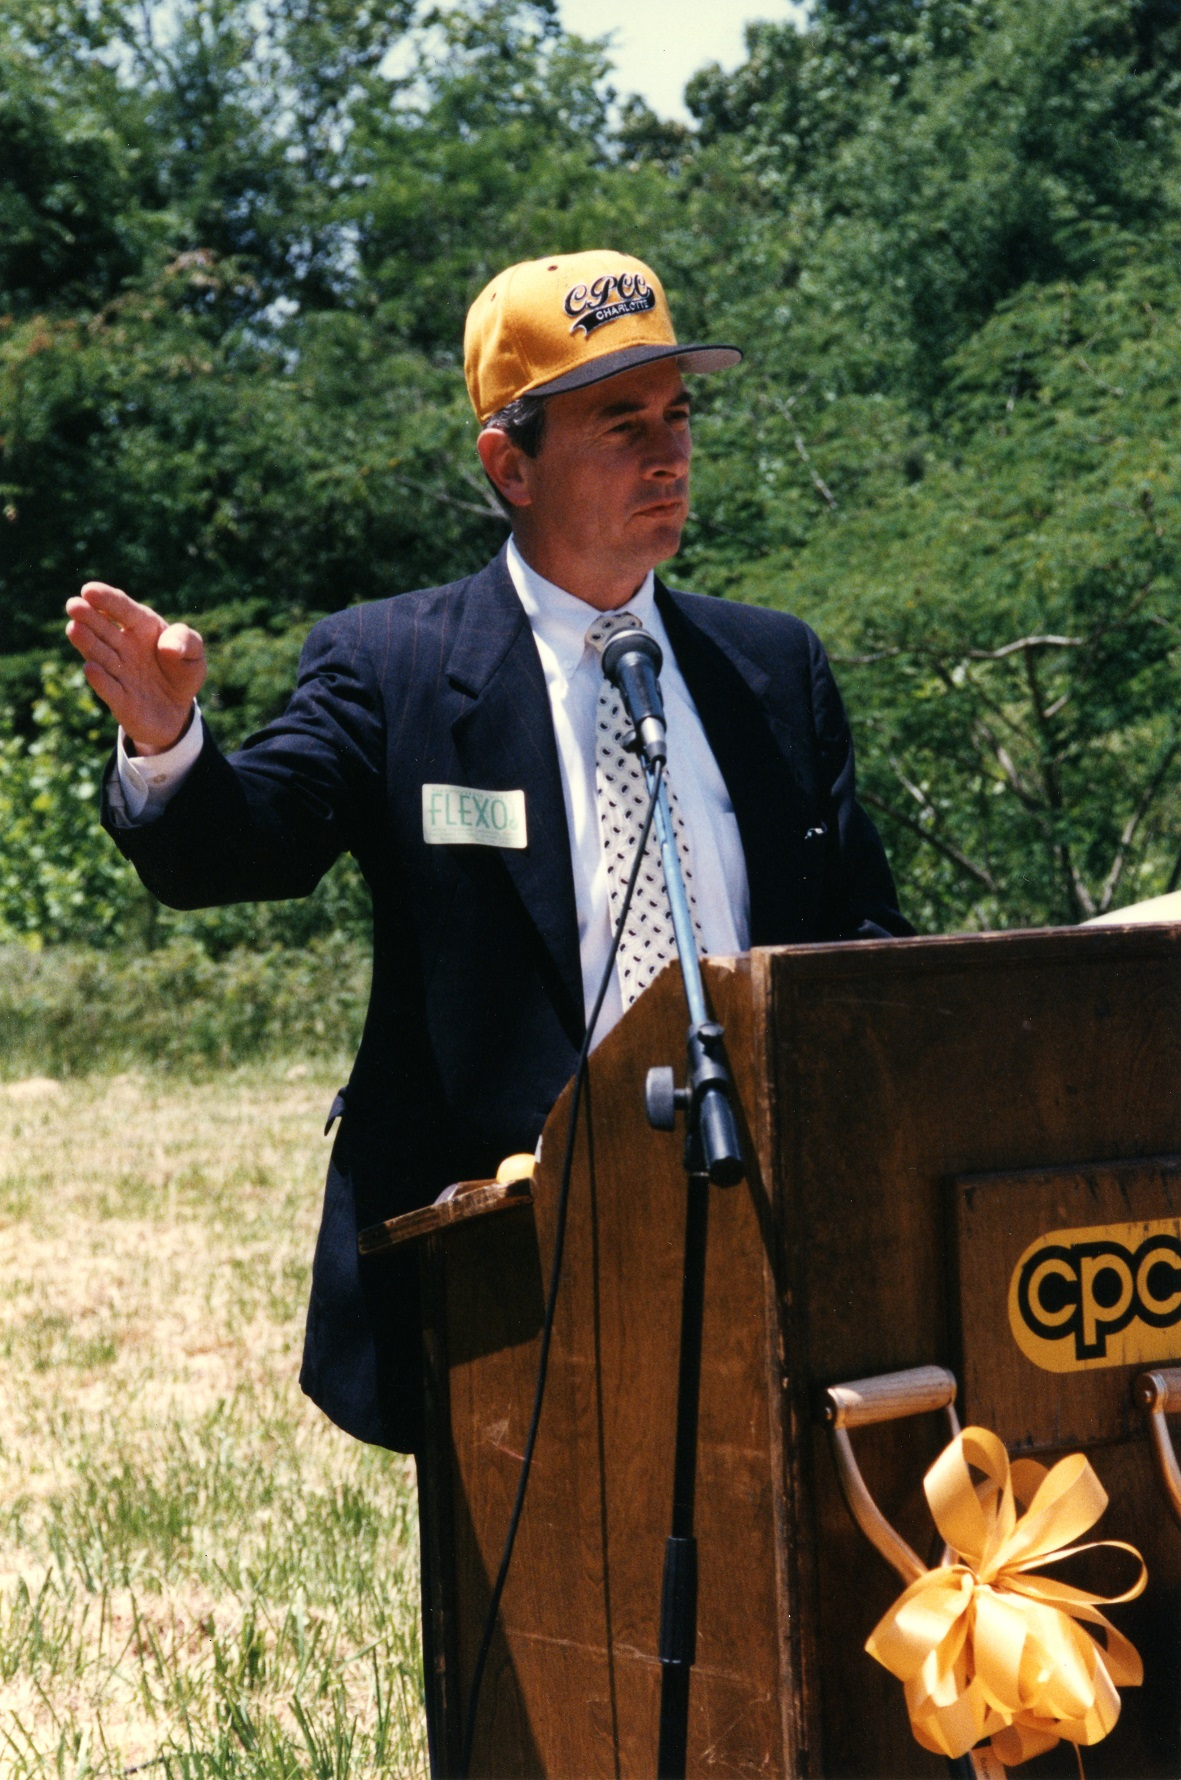 Dr. Zeiss speaking at the Ground Breaking Ceremony of the Southwest Campus in 1999. The Southwest Campus was renamed the Harper Campus in 2004.